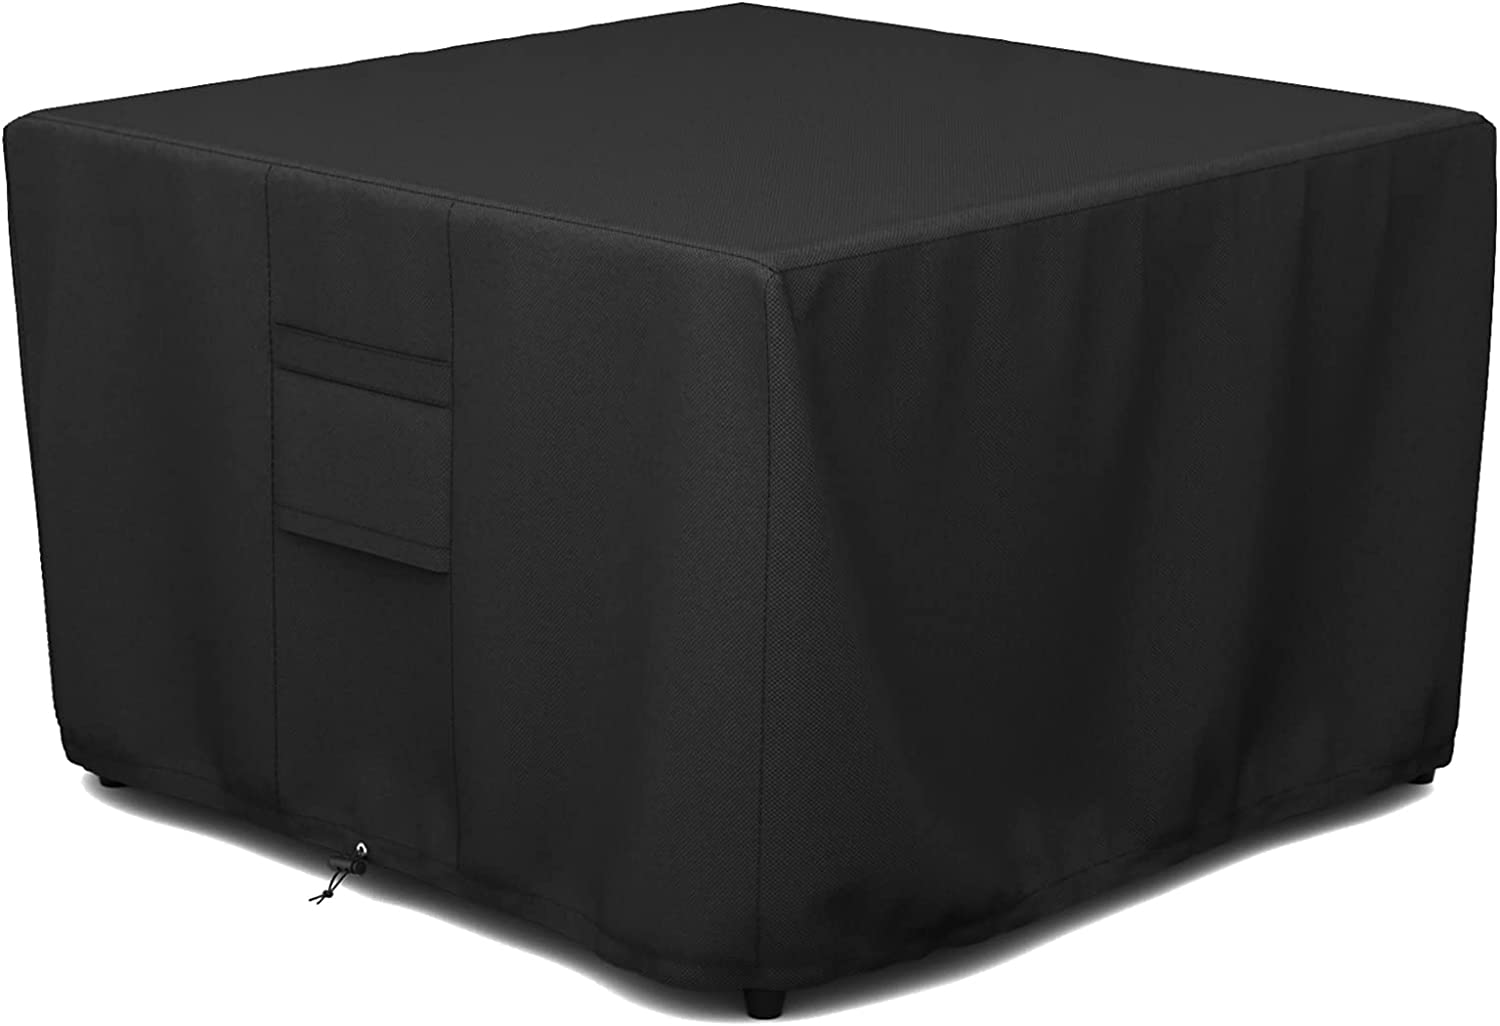 GASPRO Fire Pit Sale Cover Fits Tabl for Ranking TOP11 or Inch 28-30